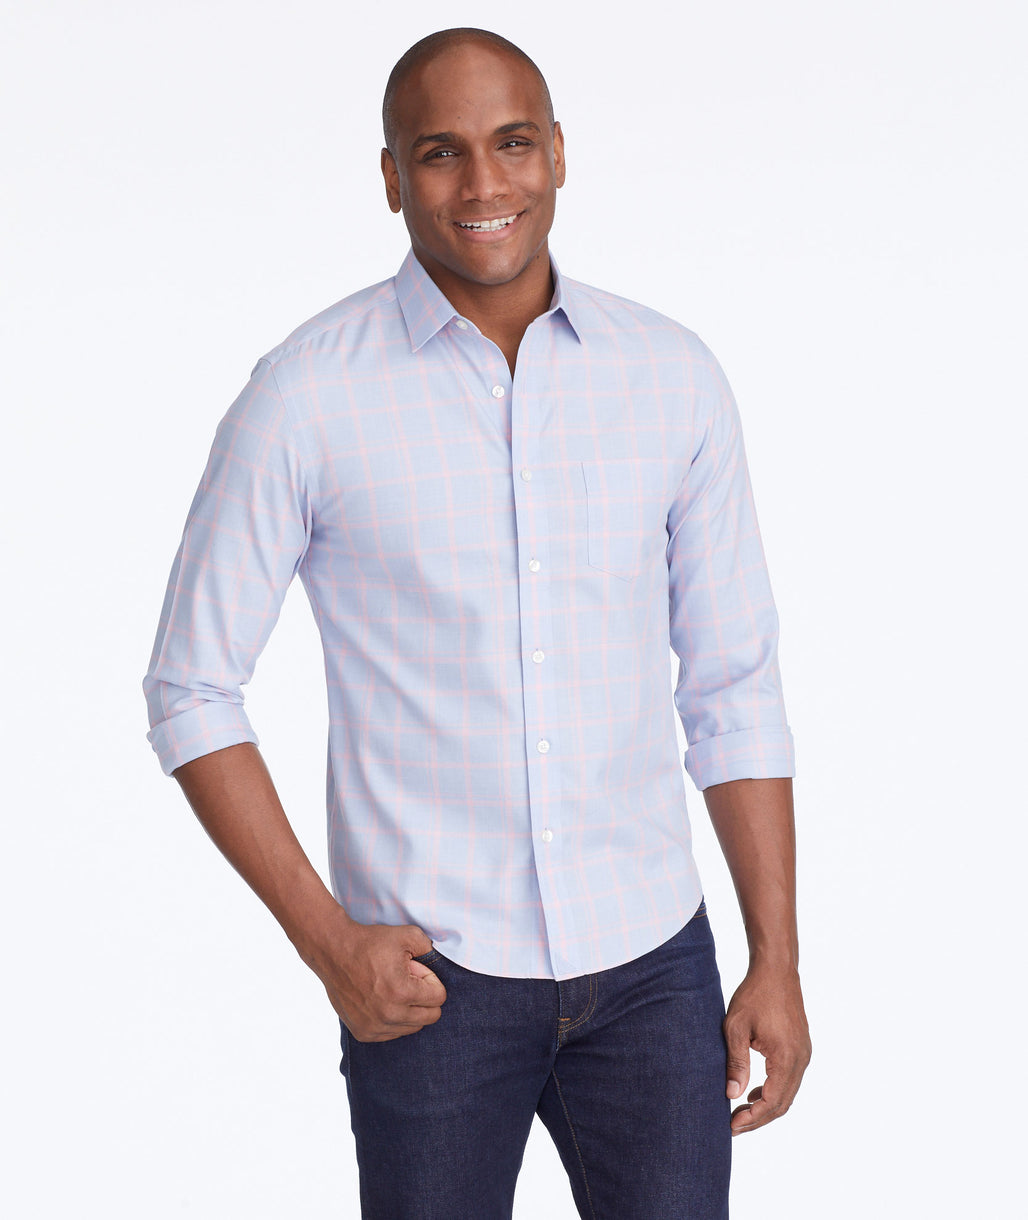 Model wearing a Light Blue Wrinkle-Free Castellare Shirt